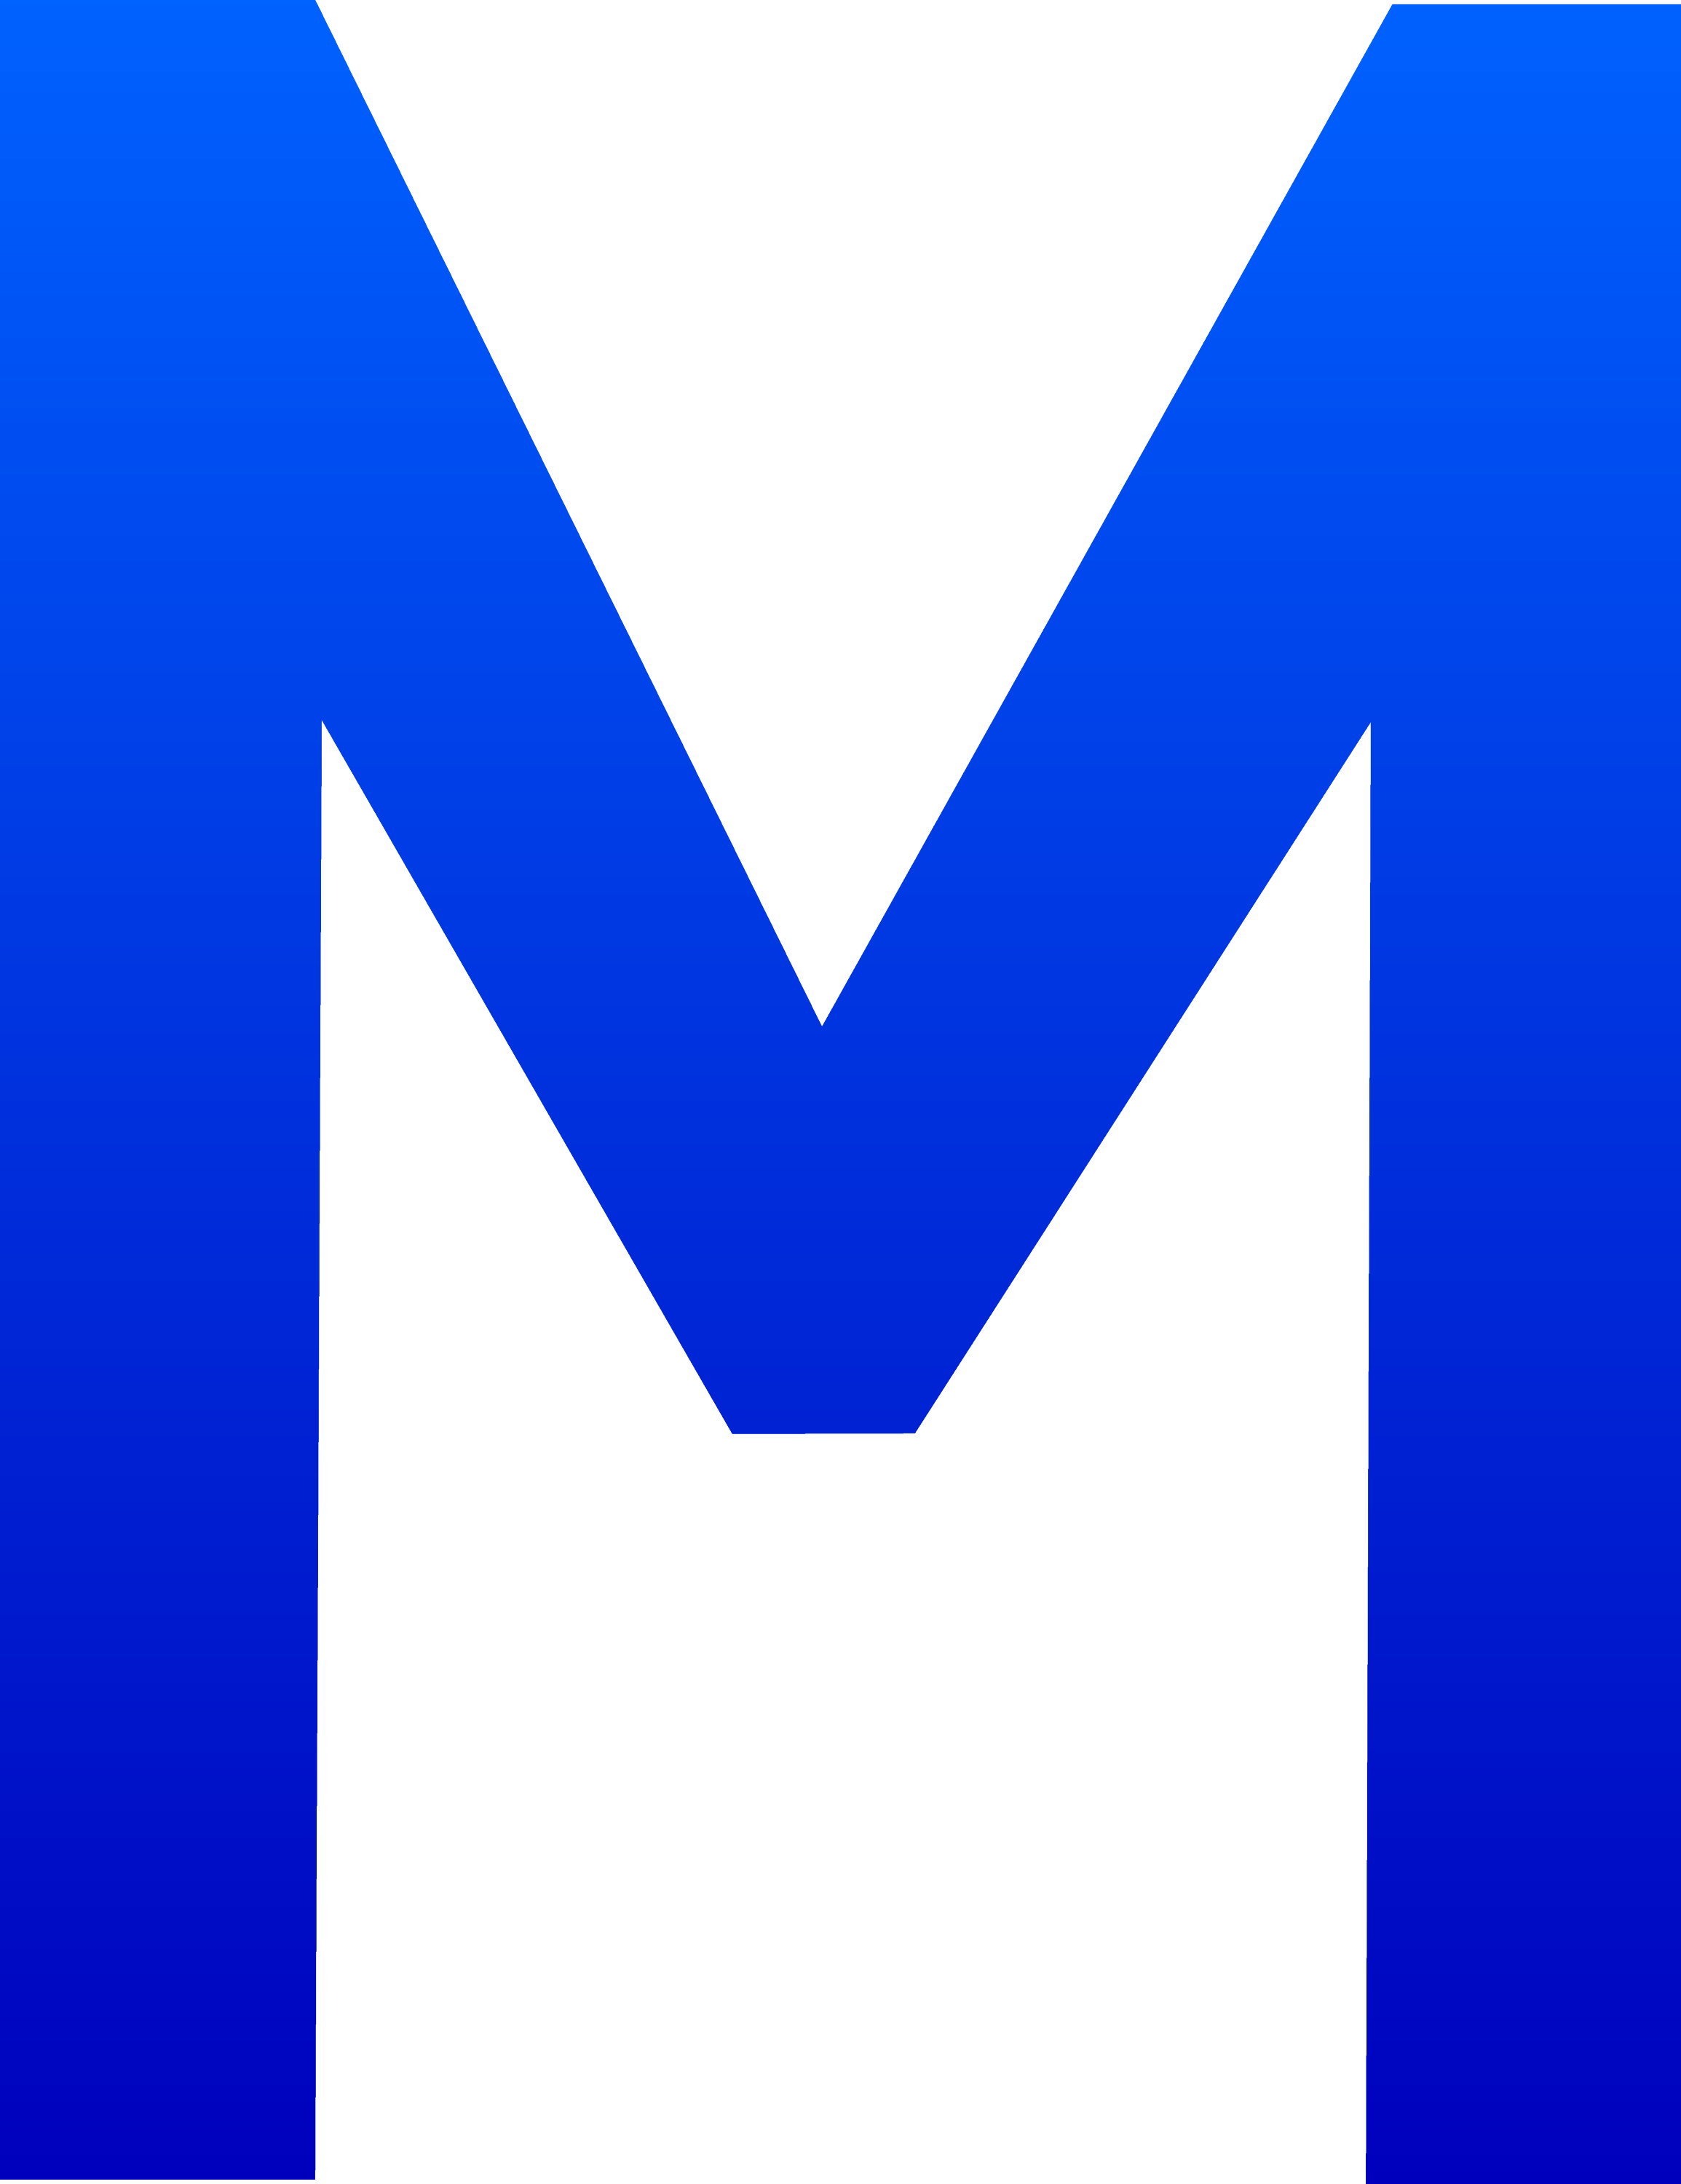 The Letter M - Free Clip Art